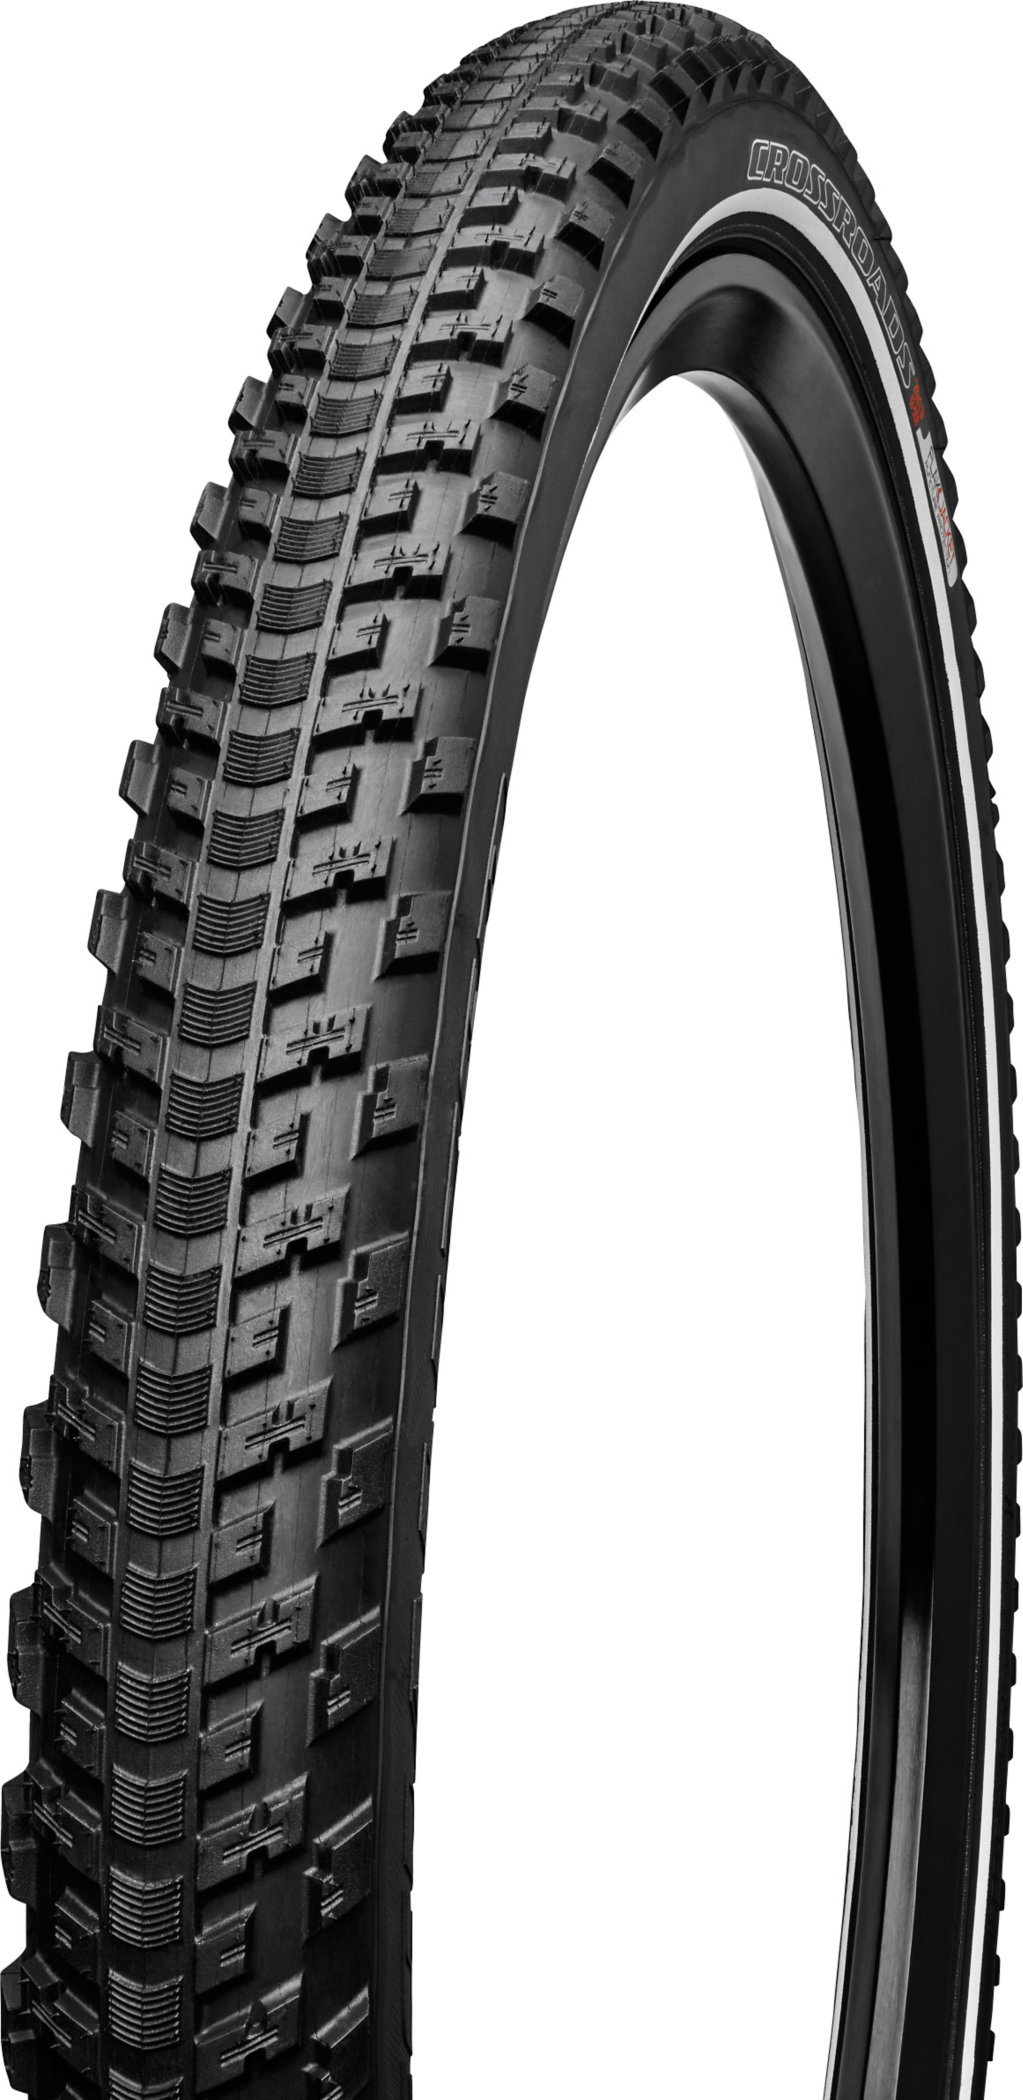 SPECIALIZED CROSSROADS REFLECT TIRE 26X1.9 - SPECIALIZED CROSSROADS REFLECT TIRE 26X1.9